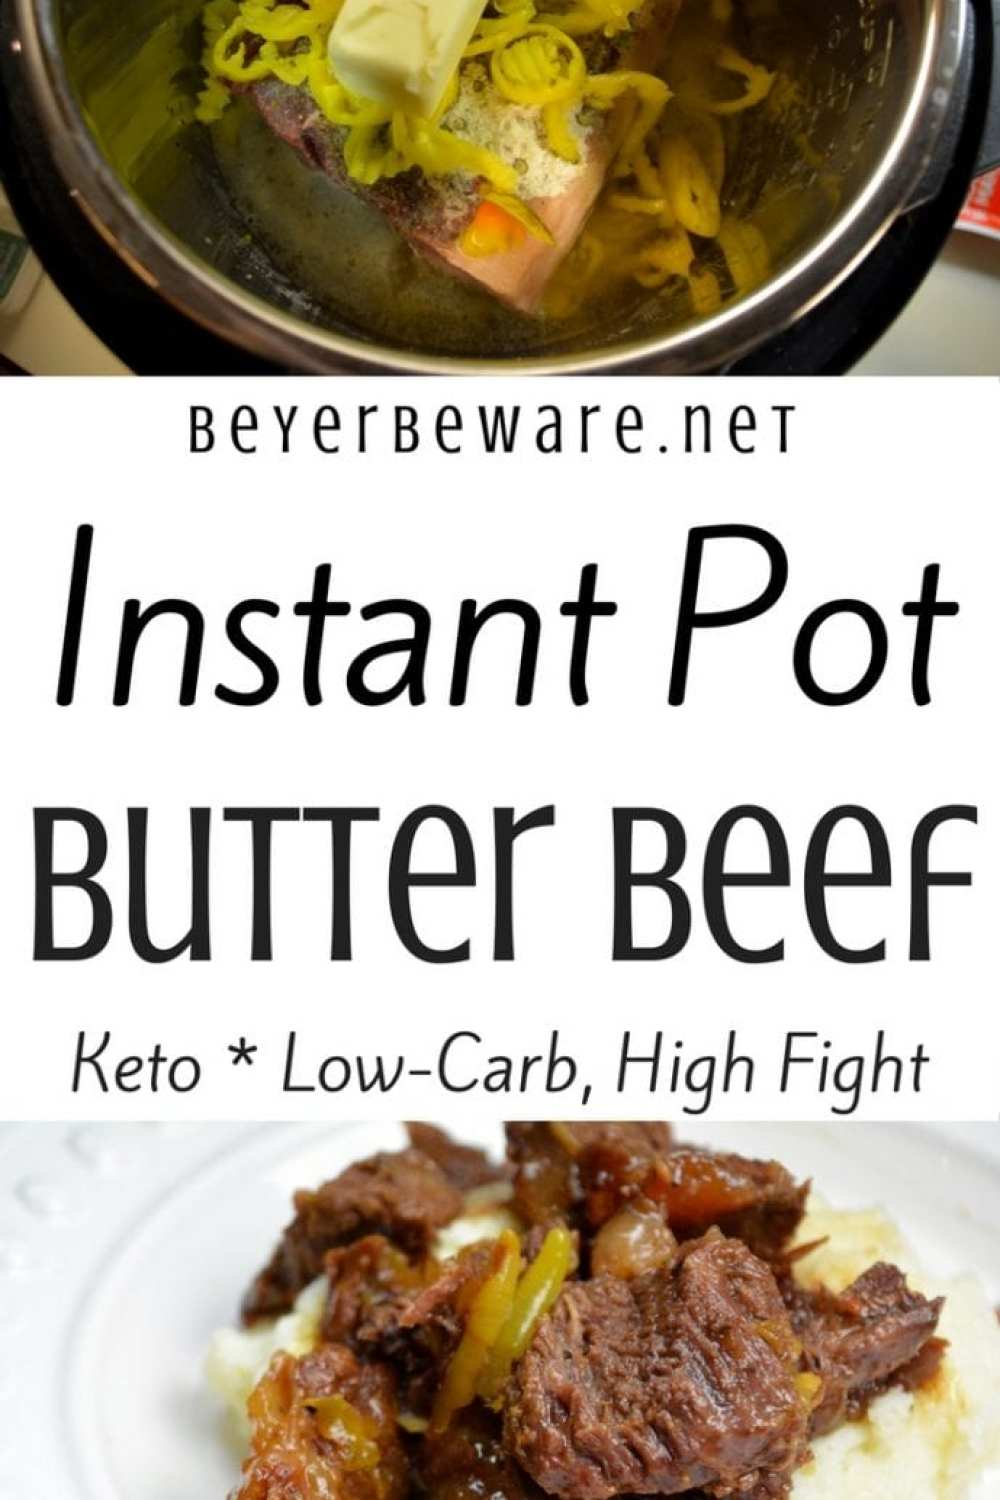 Keto Instant Pot butter beef recipe is my favorite keto roast recipe because it is full of flavor, tender to eat and perfect over mashed cauliflower or potatoes for those not on a low-carb diet. #Keto